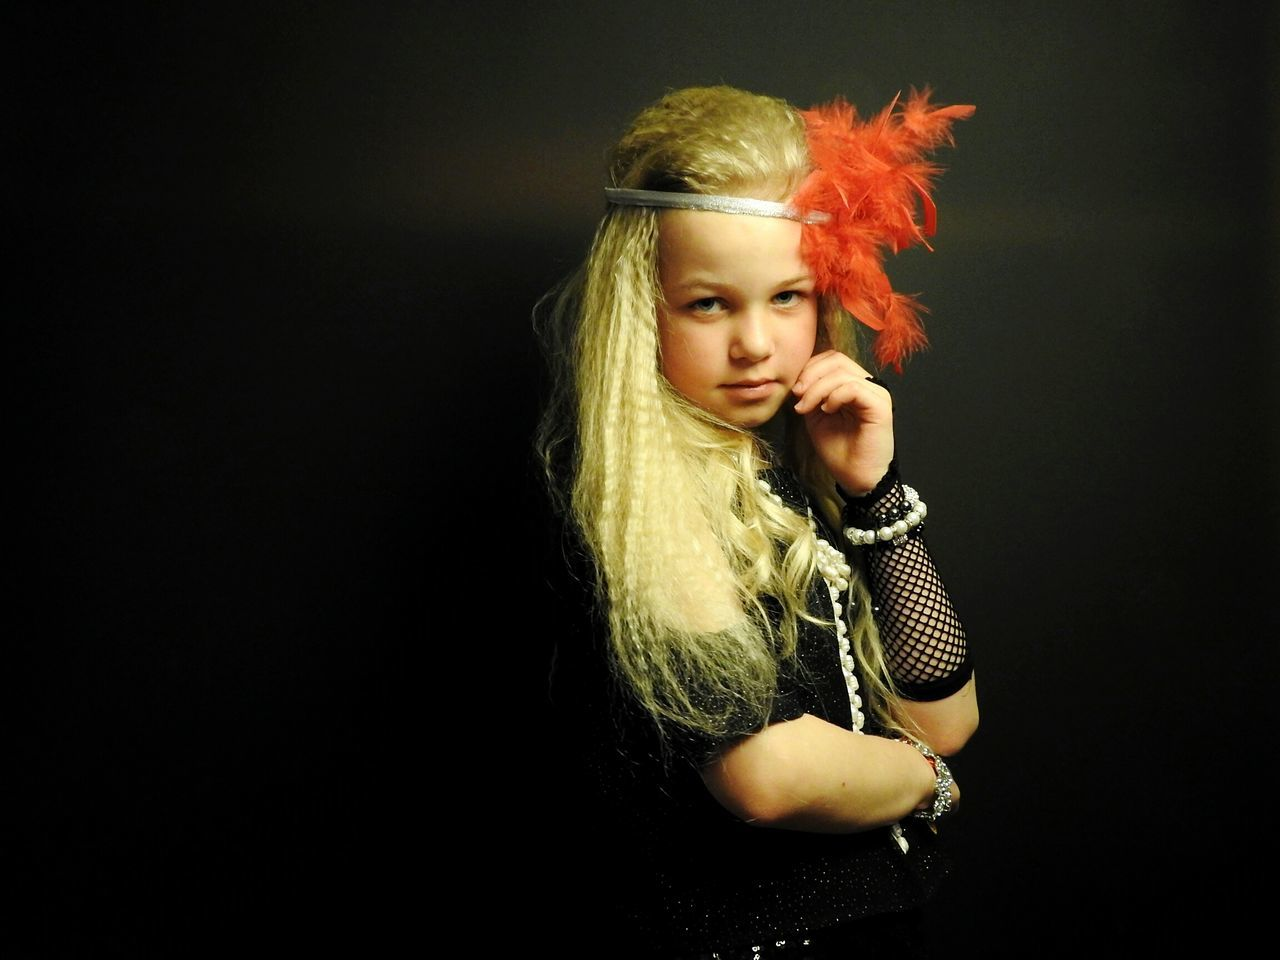 Blonde Daughter Retro Chicago Mafia  Style Black Background Homephotography EyeEmNewHere The Portraitist - 2017 EyeEm Awards Beauty Red Colors Of Sankt-Peterburg Sankt-Petersburg Russia